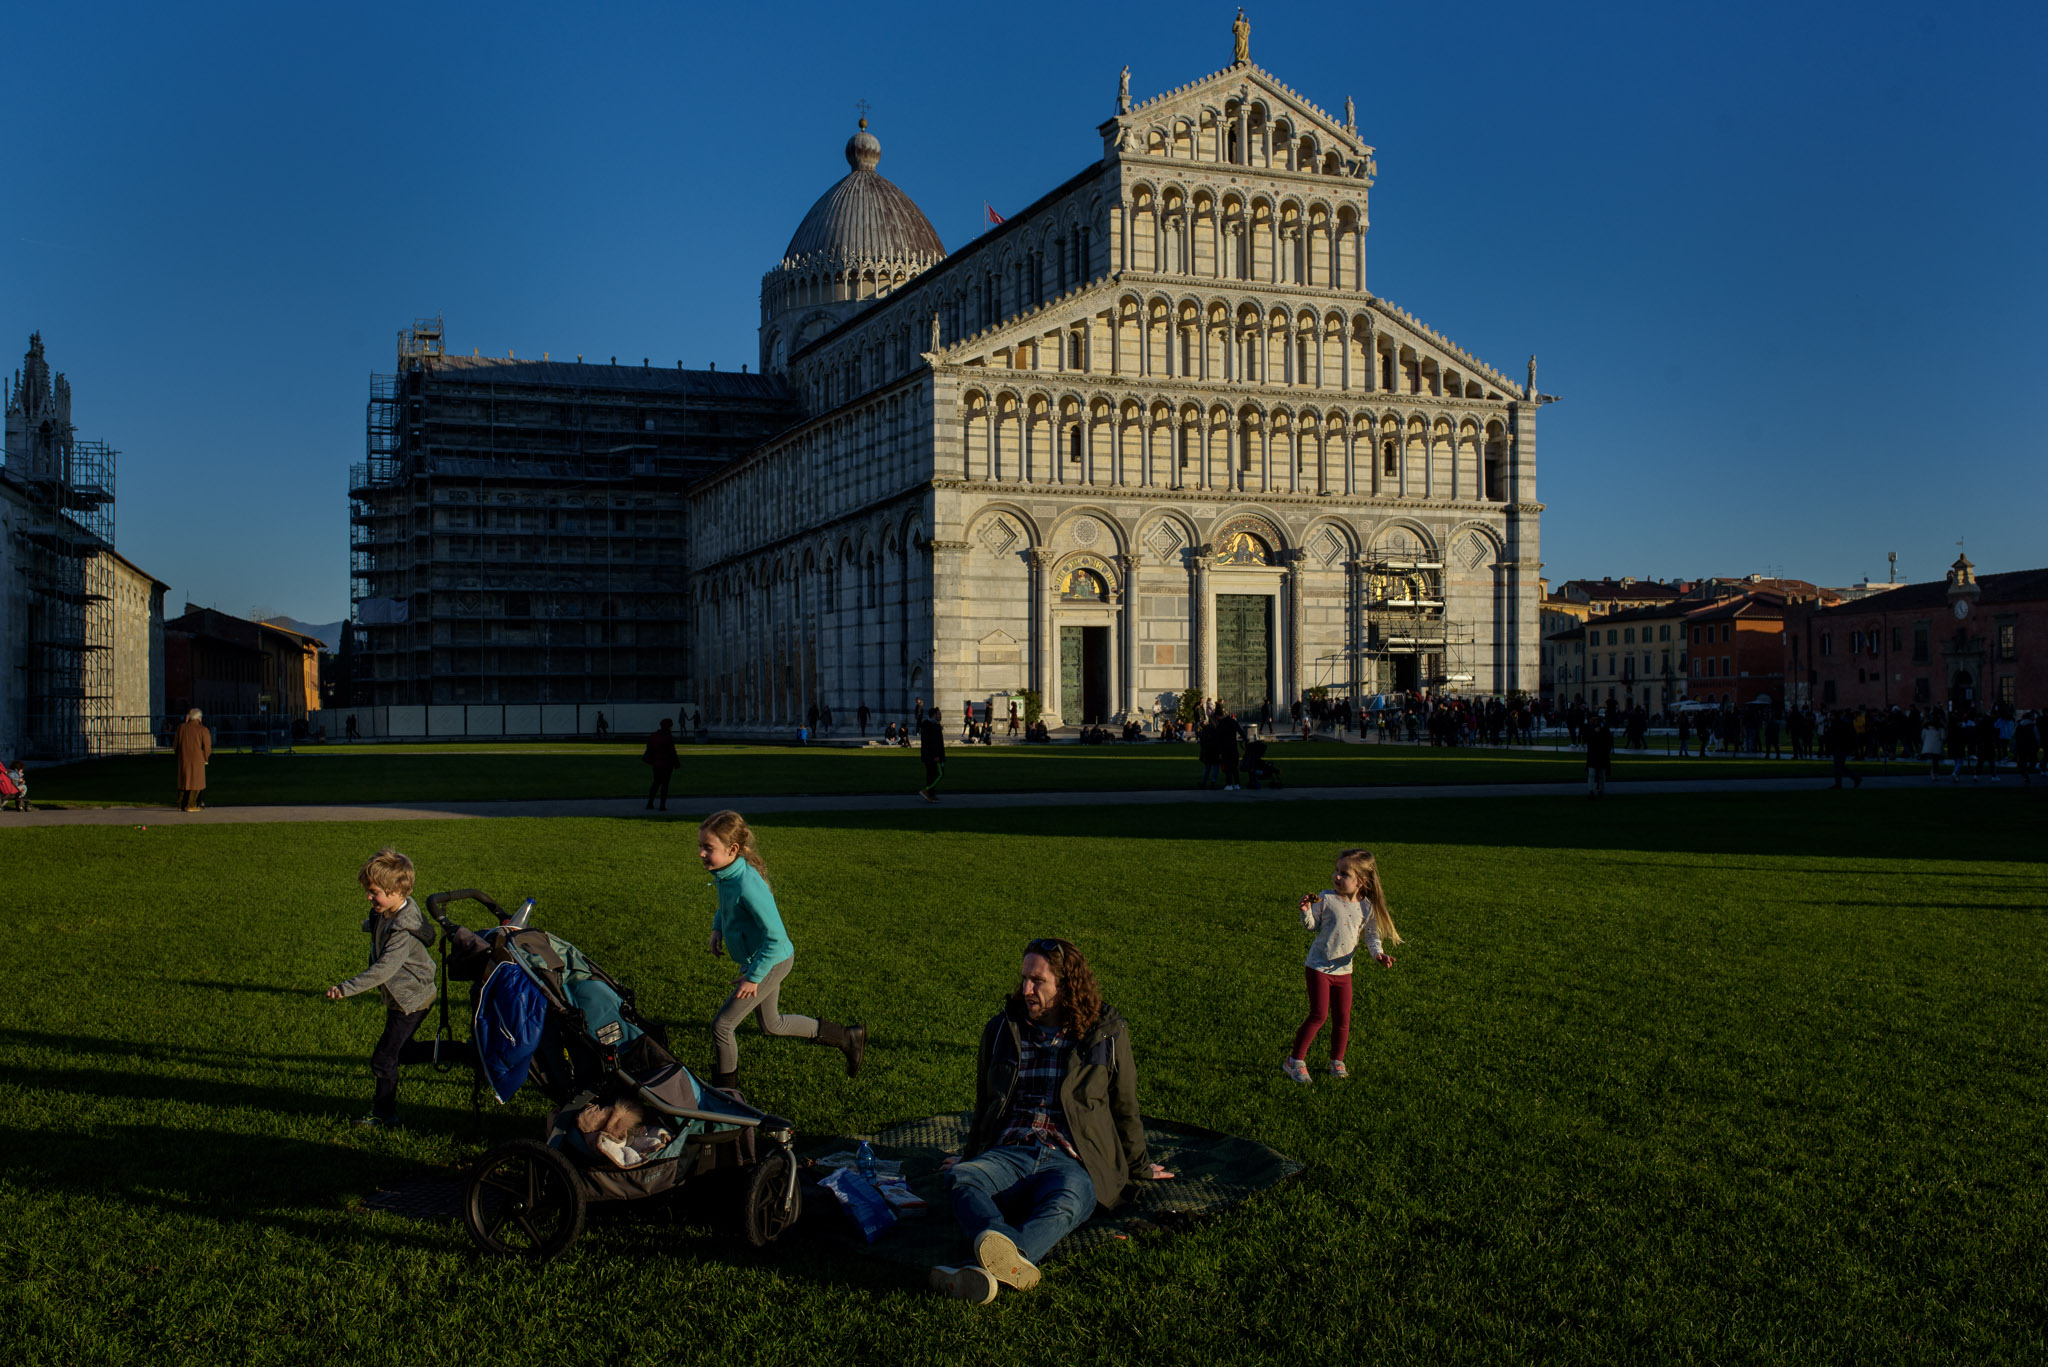 kids play, dad sits in front of the cathedral in Pisa